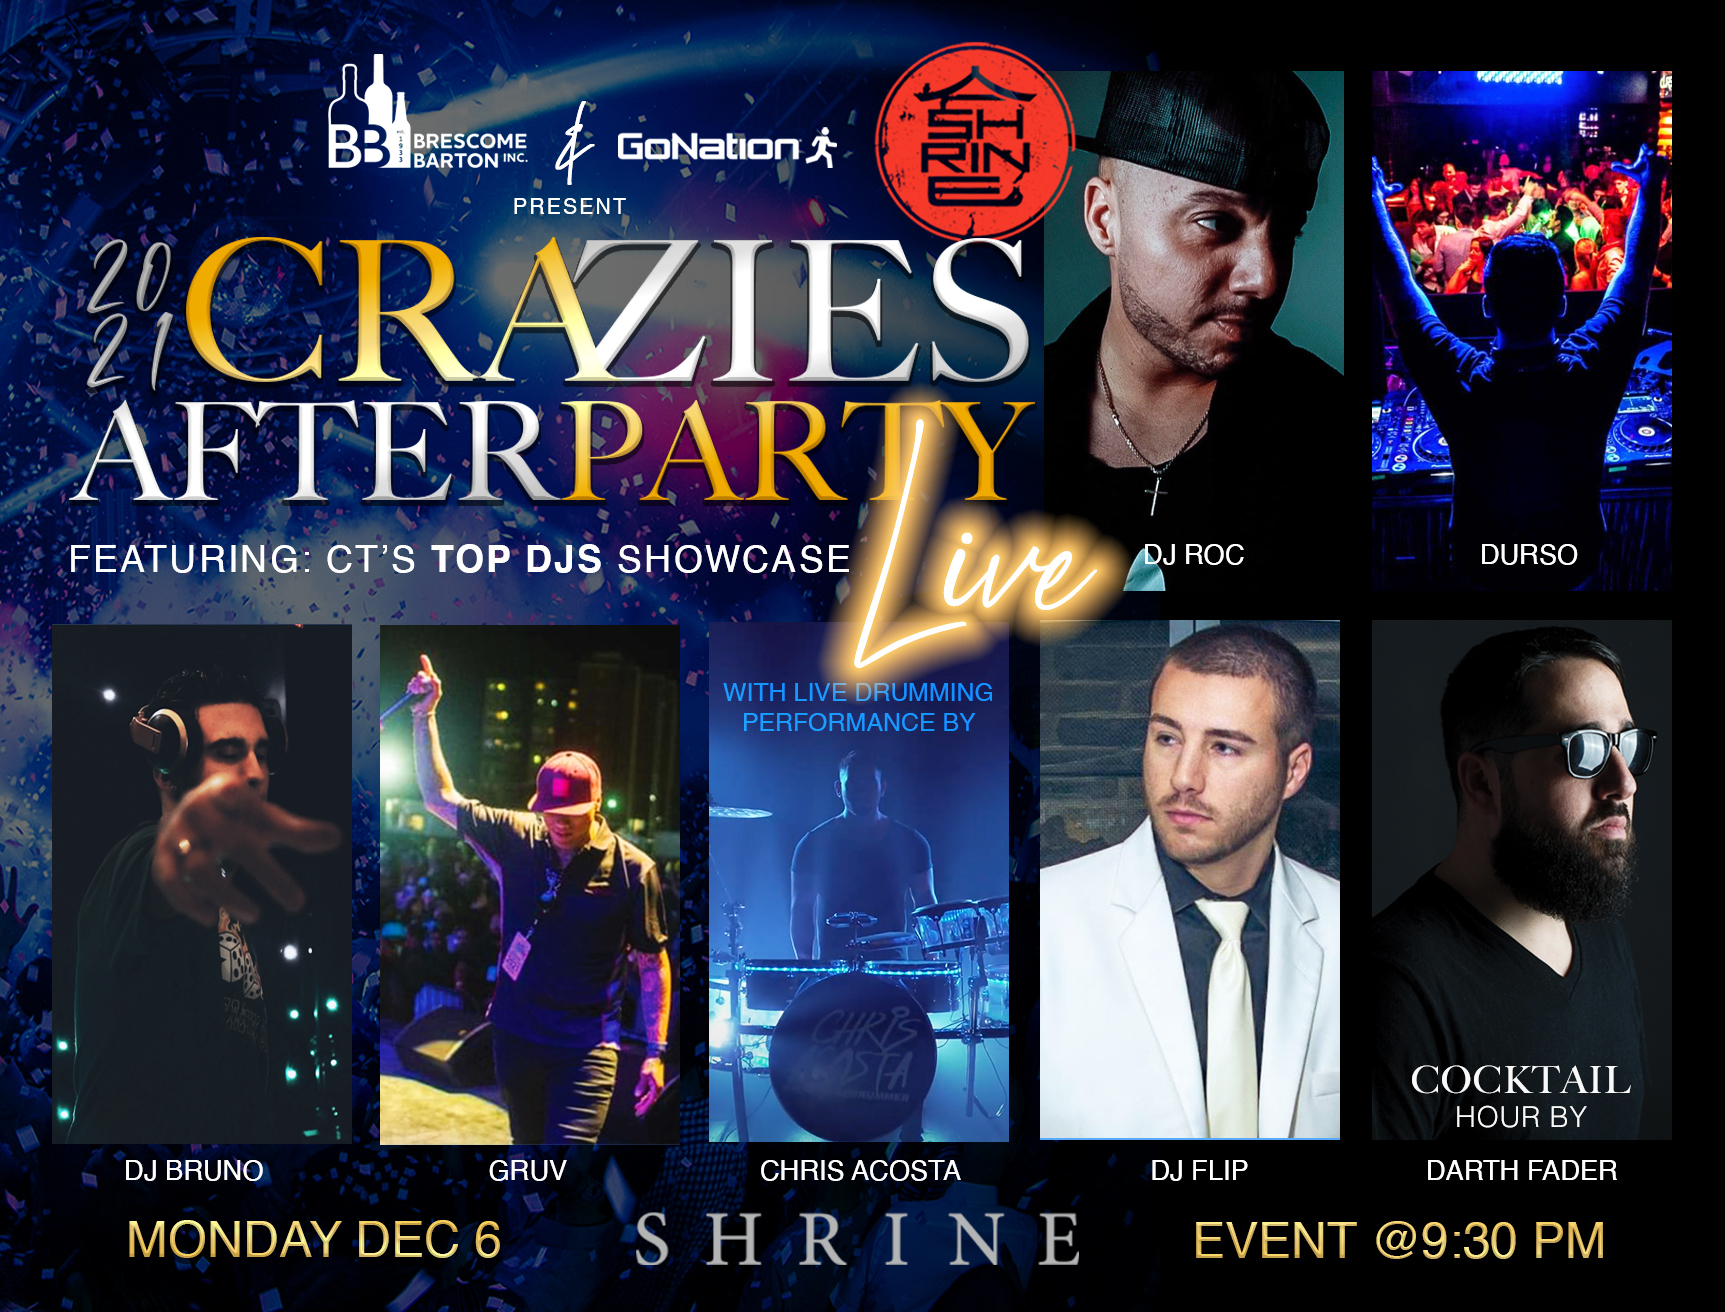 craziesawards after party at Shrine Foxwoods